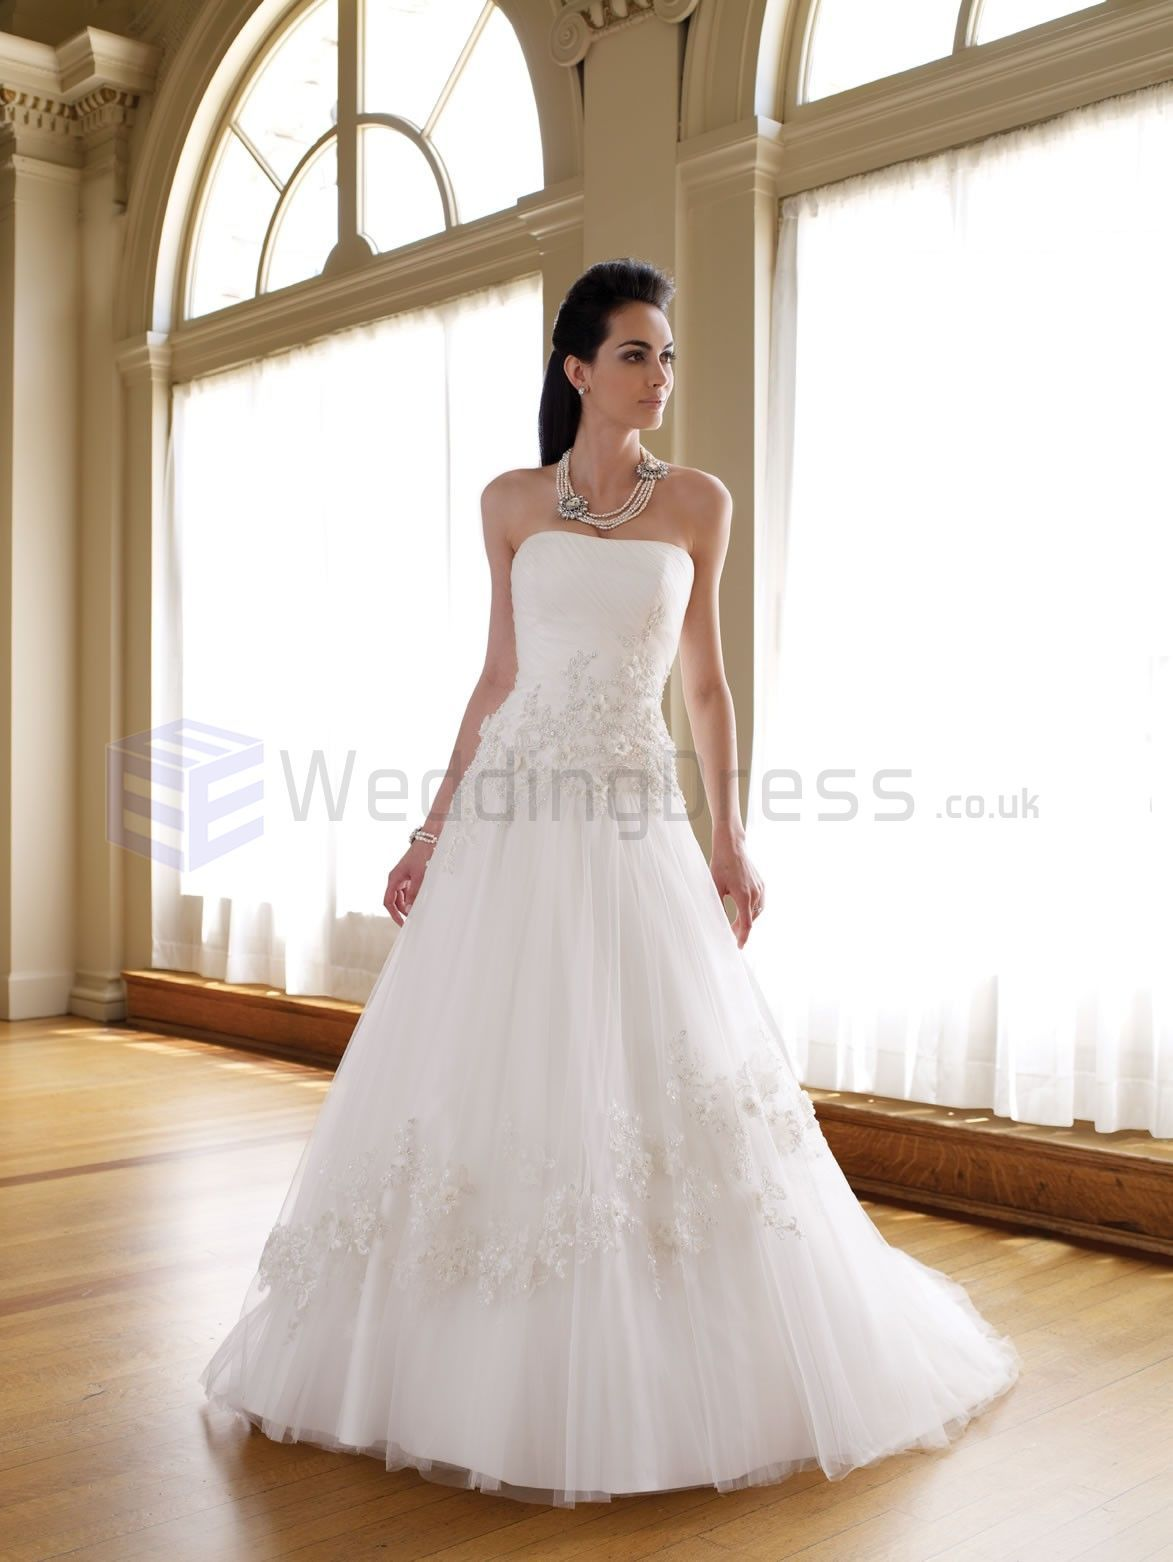 A-LINE GOWN ORGANZA FINELY RUCHED BODICE SOFTLY CURVED NECKLINE CHAPEL LENGTH TRAIN WEDDING DRESSES (MB111210)